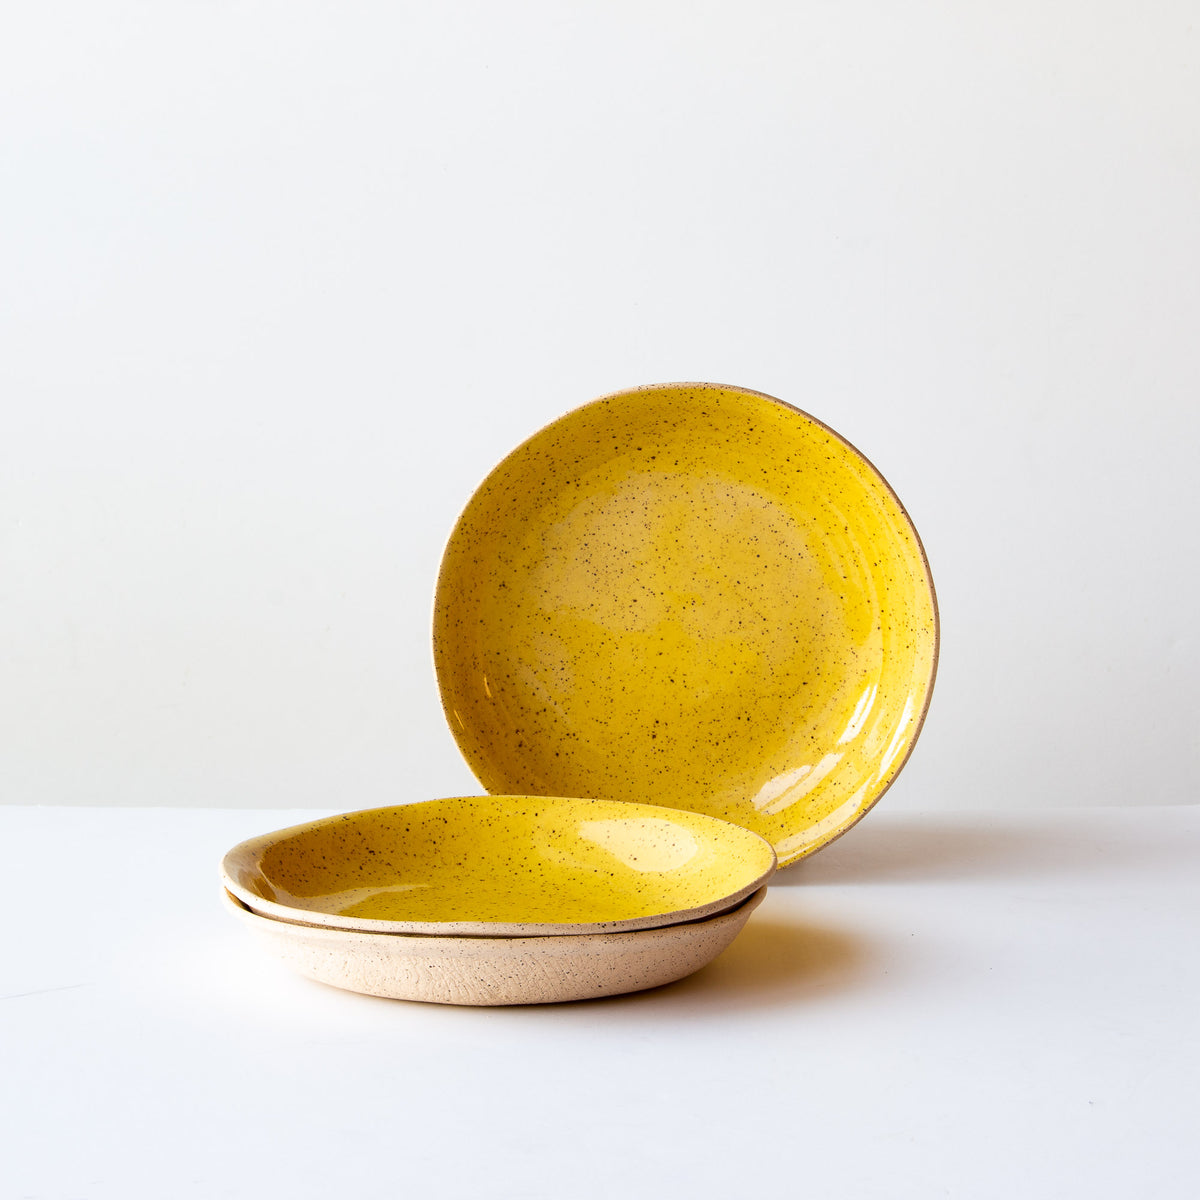 Three Small Freckled Pasta Bowls - Handmade in Yellow Glazed Stoneware - Sold by Chic & Basta